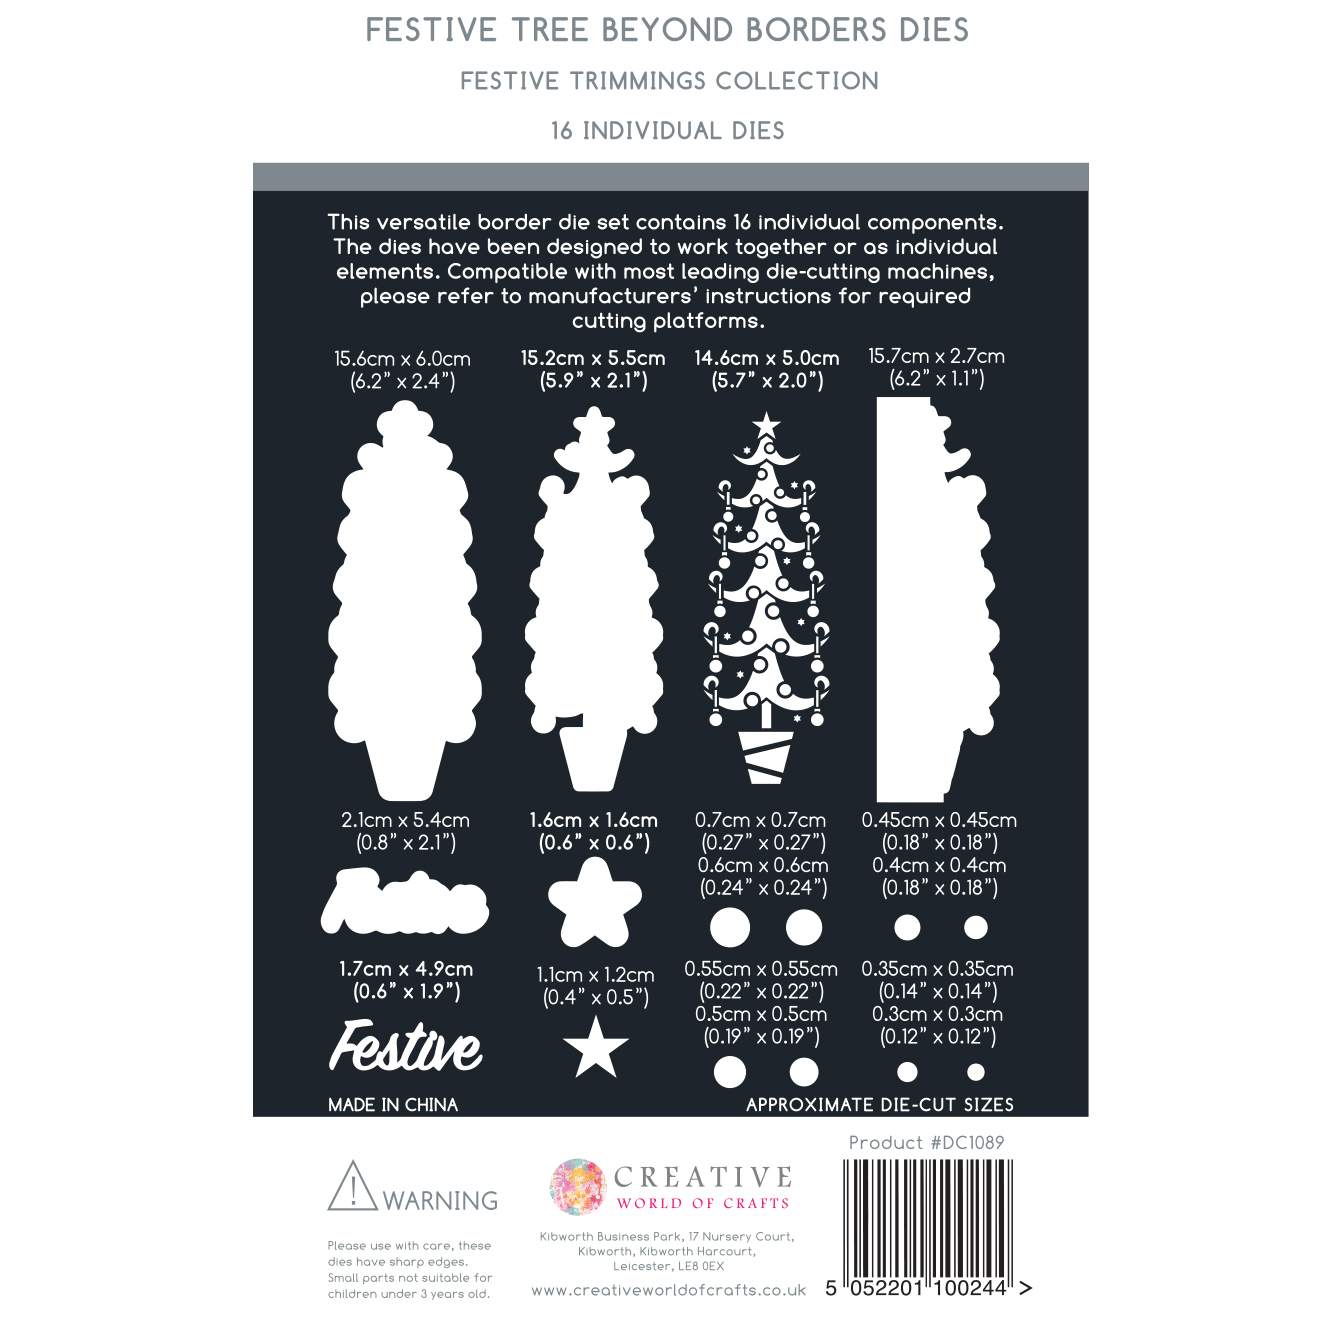 The Paper Boutique Festive Trimmings Beyond Borders – Festive Tree Cutting Die